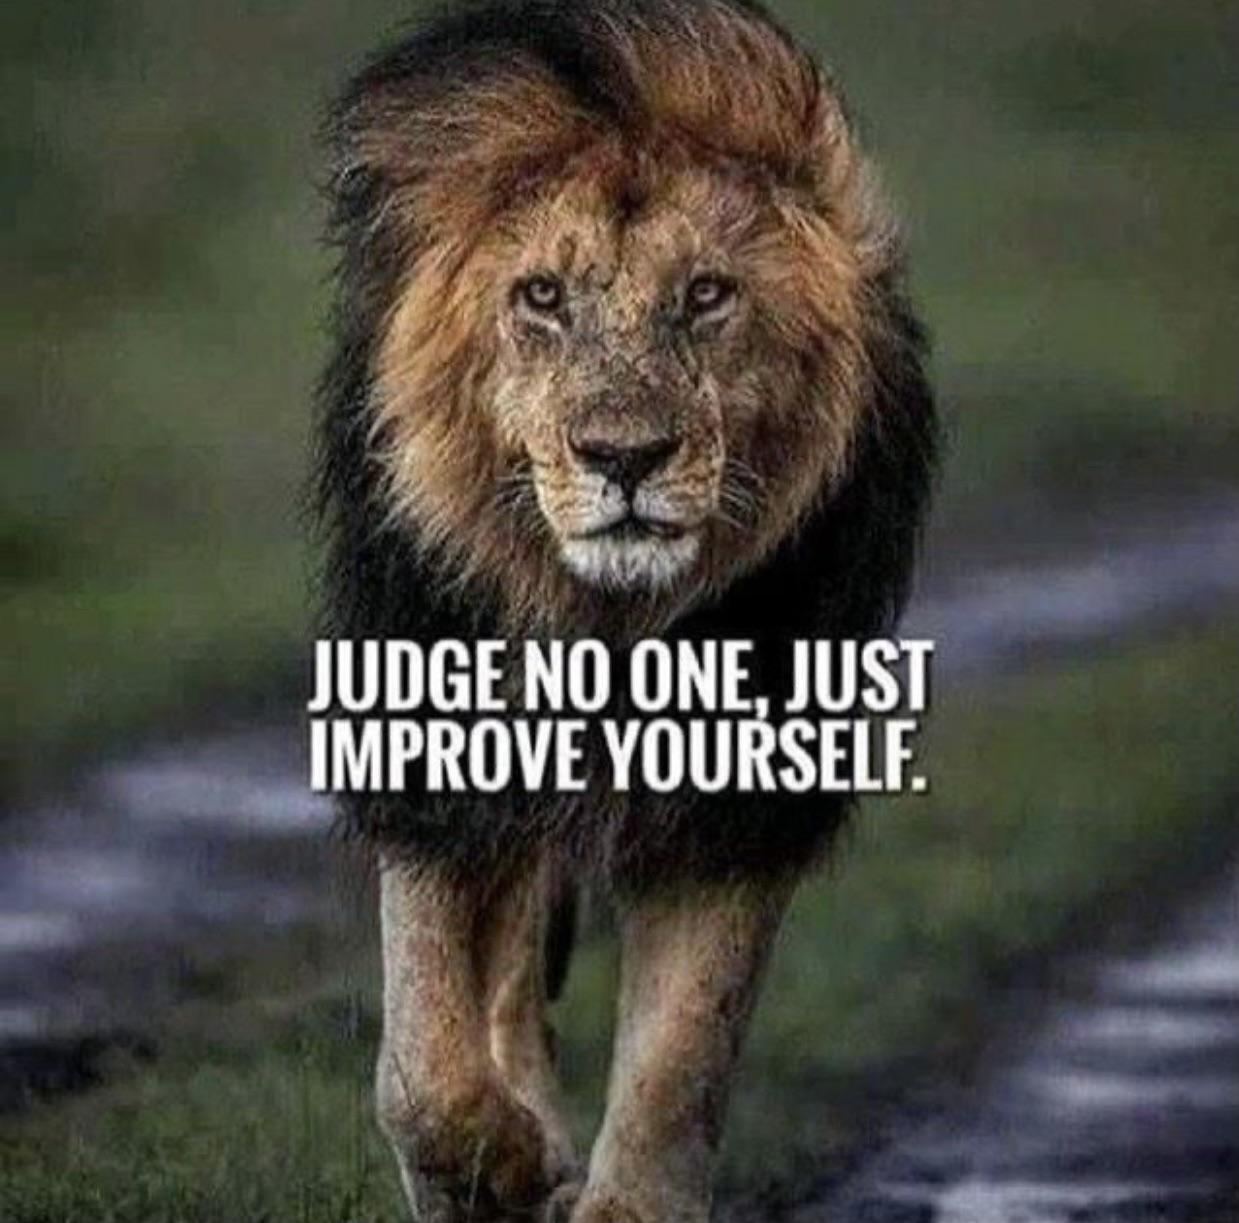 [Image] You do you and don't judge people.